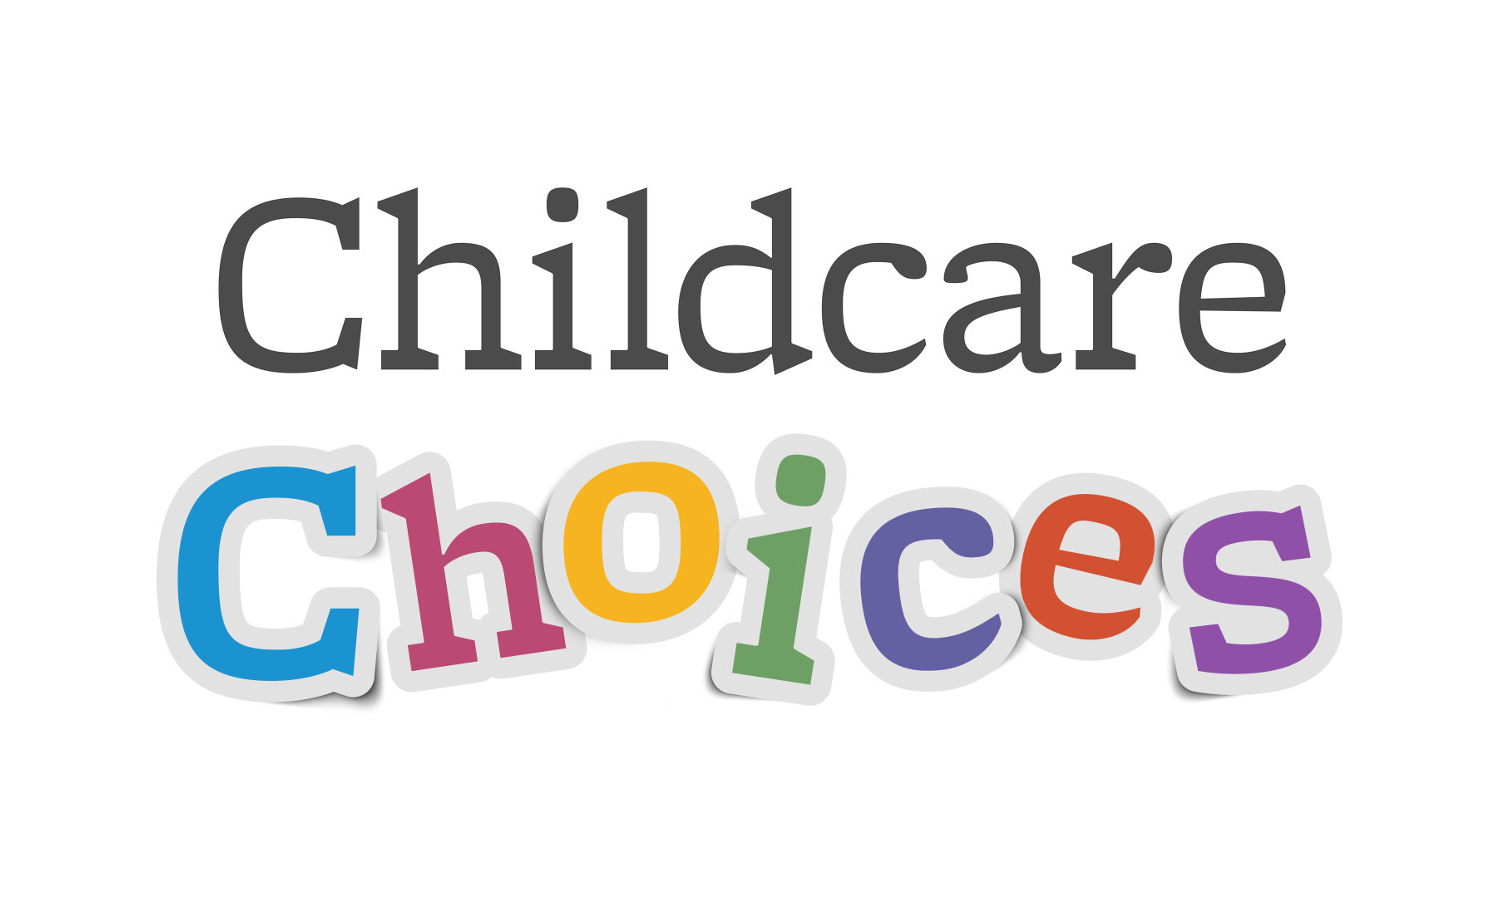 Childcare providers | Childcare choices